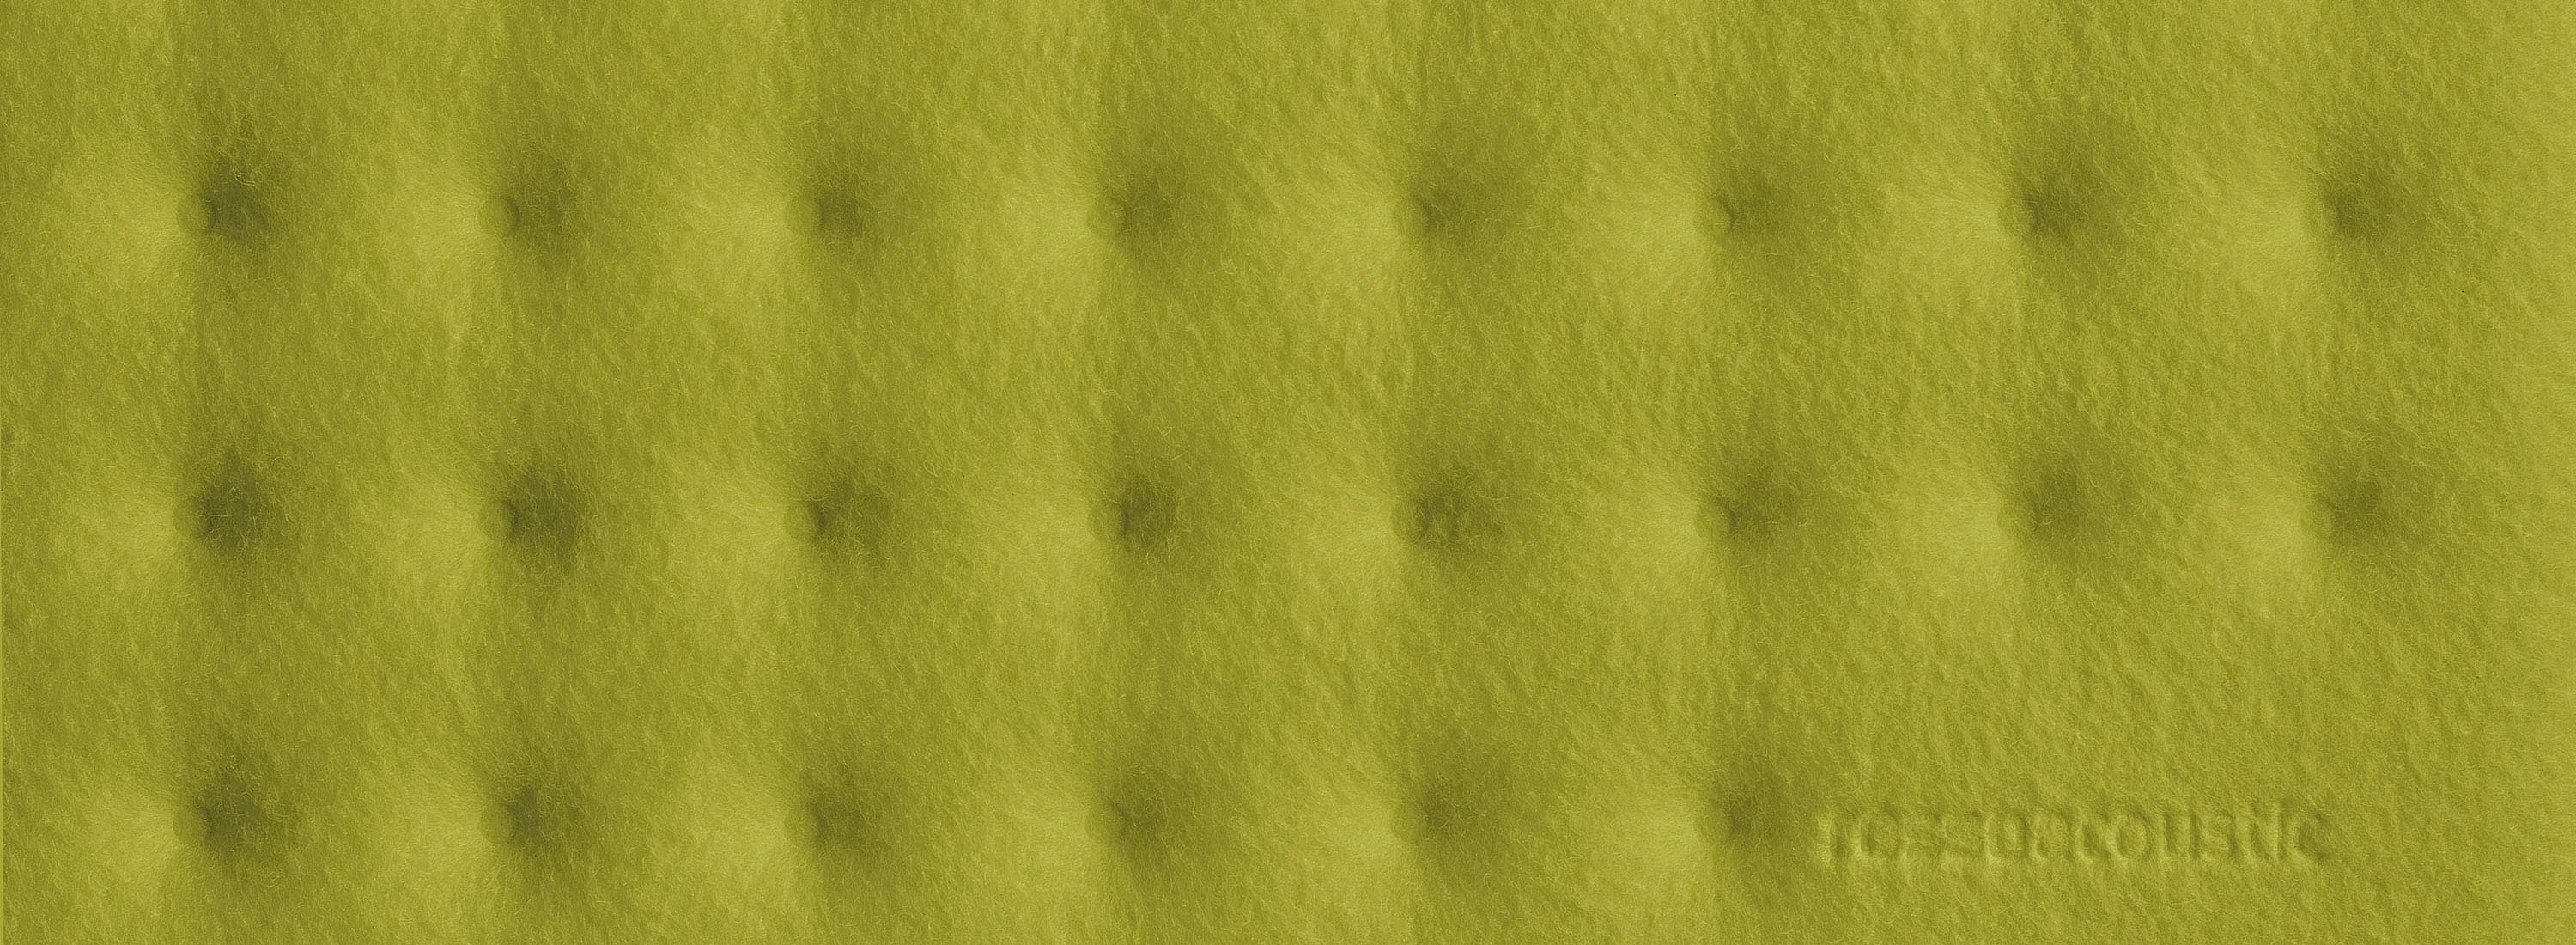 Rossoacoustic PAD Q 1200 Basic, 1200 x 1200 x 25 mm, soft moss